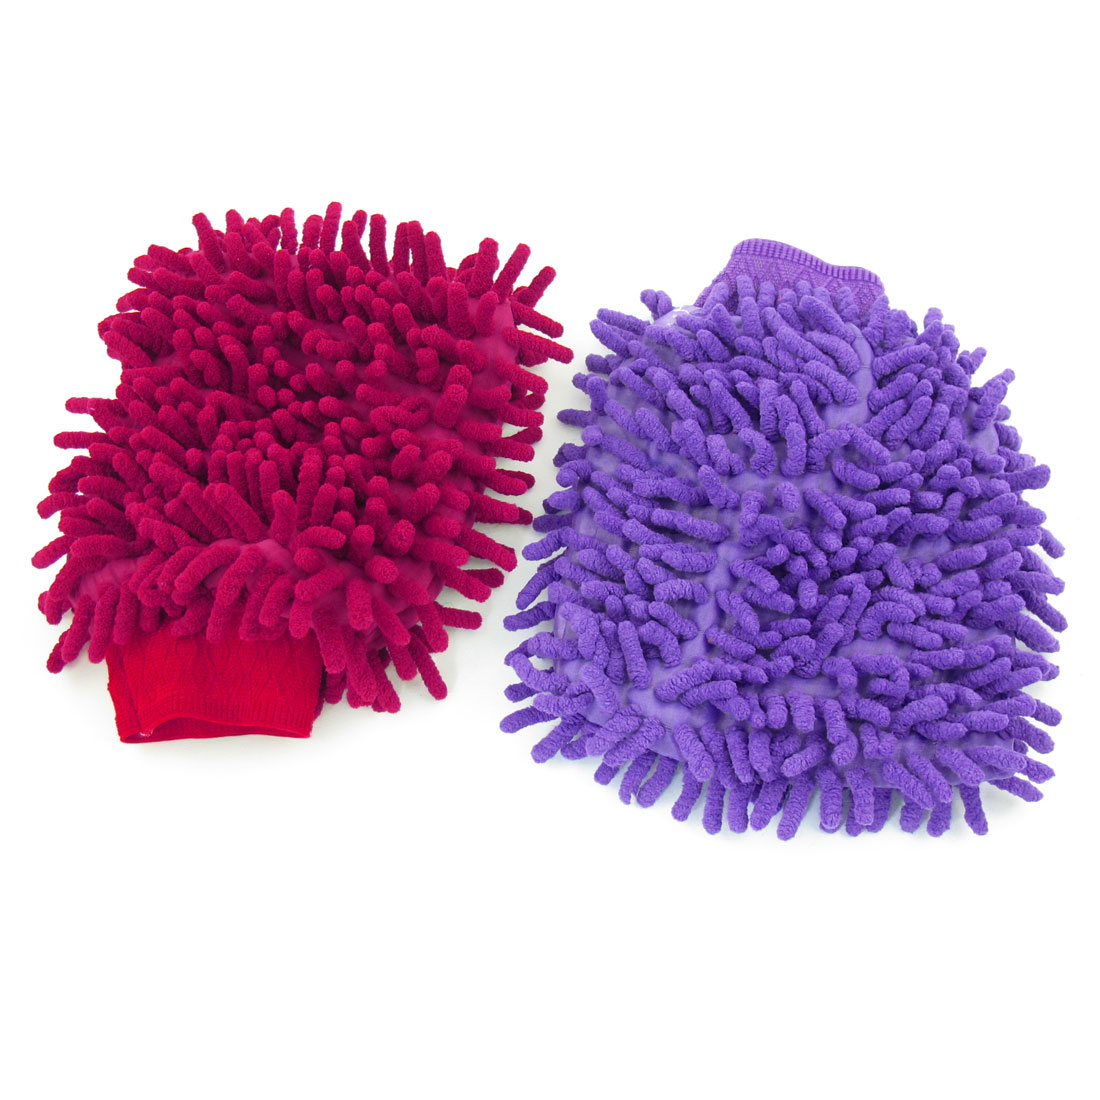 2 Pcs Auto Car Washing Tool Elastic Cuff Microfiber Mitt Gloves Purple Red